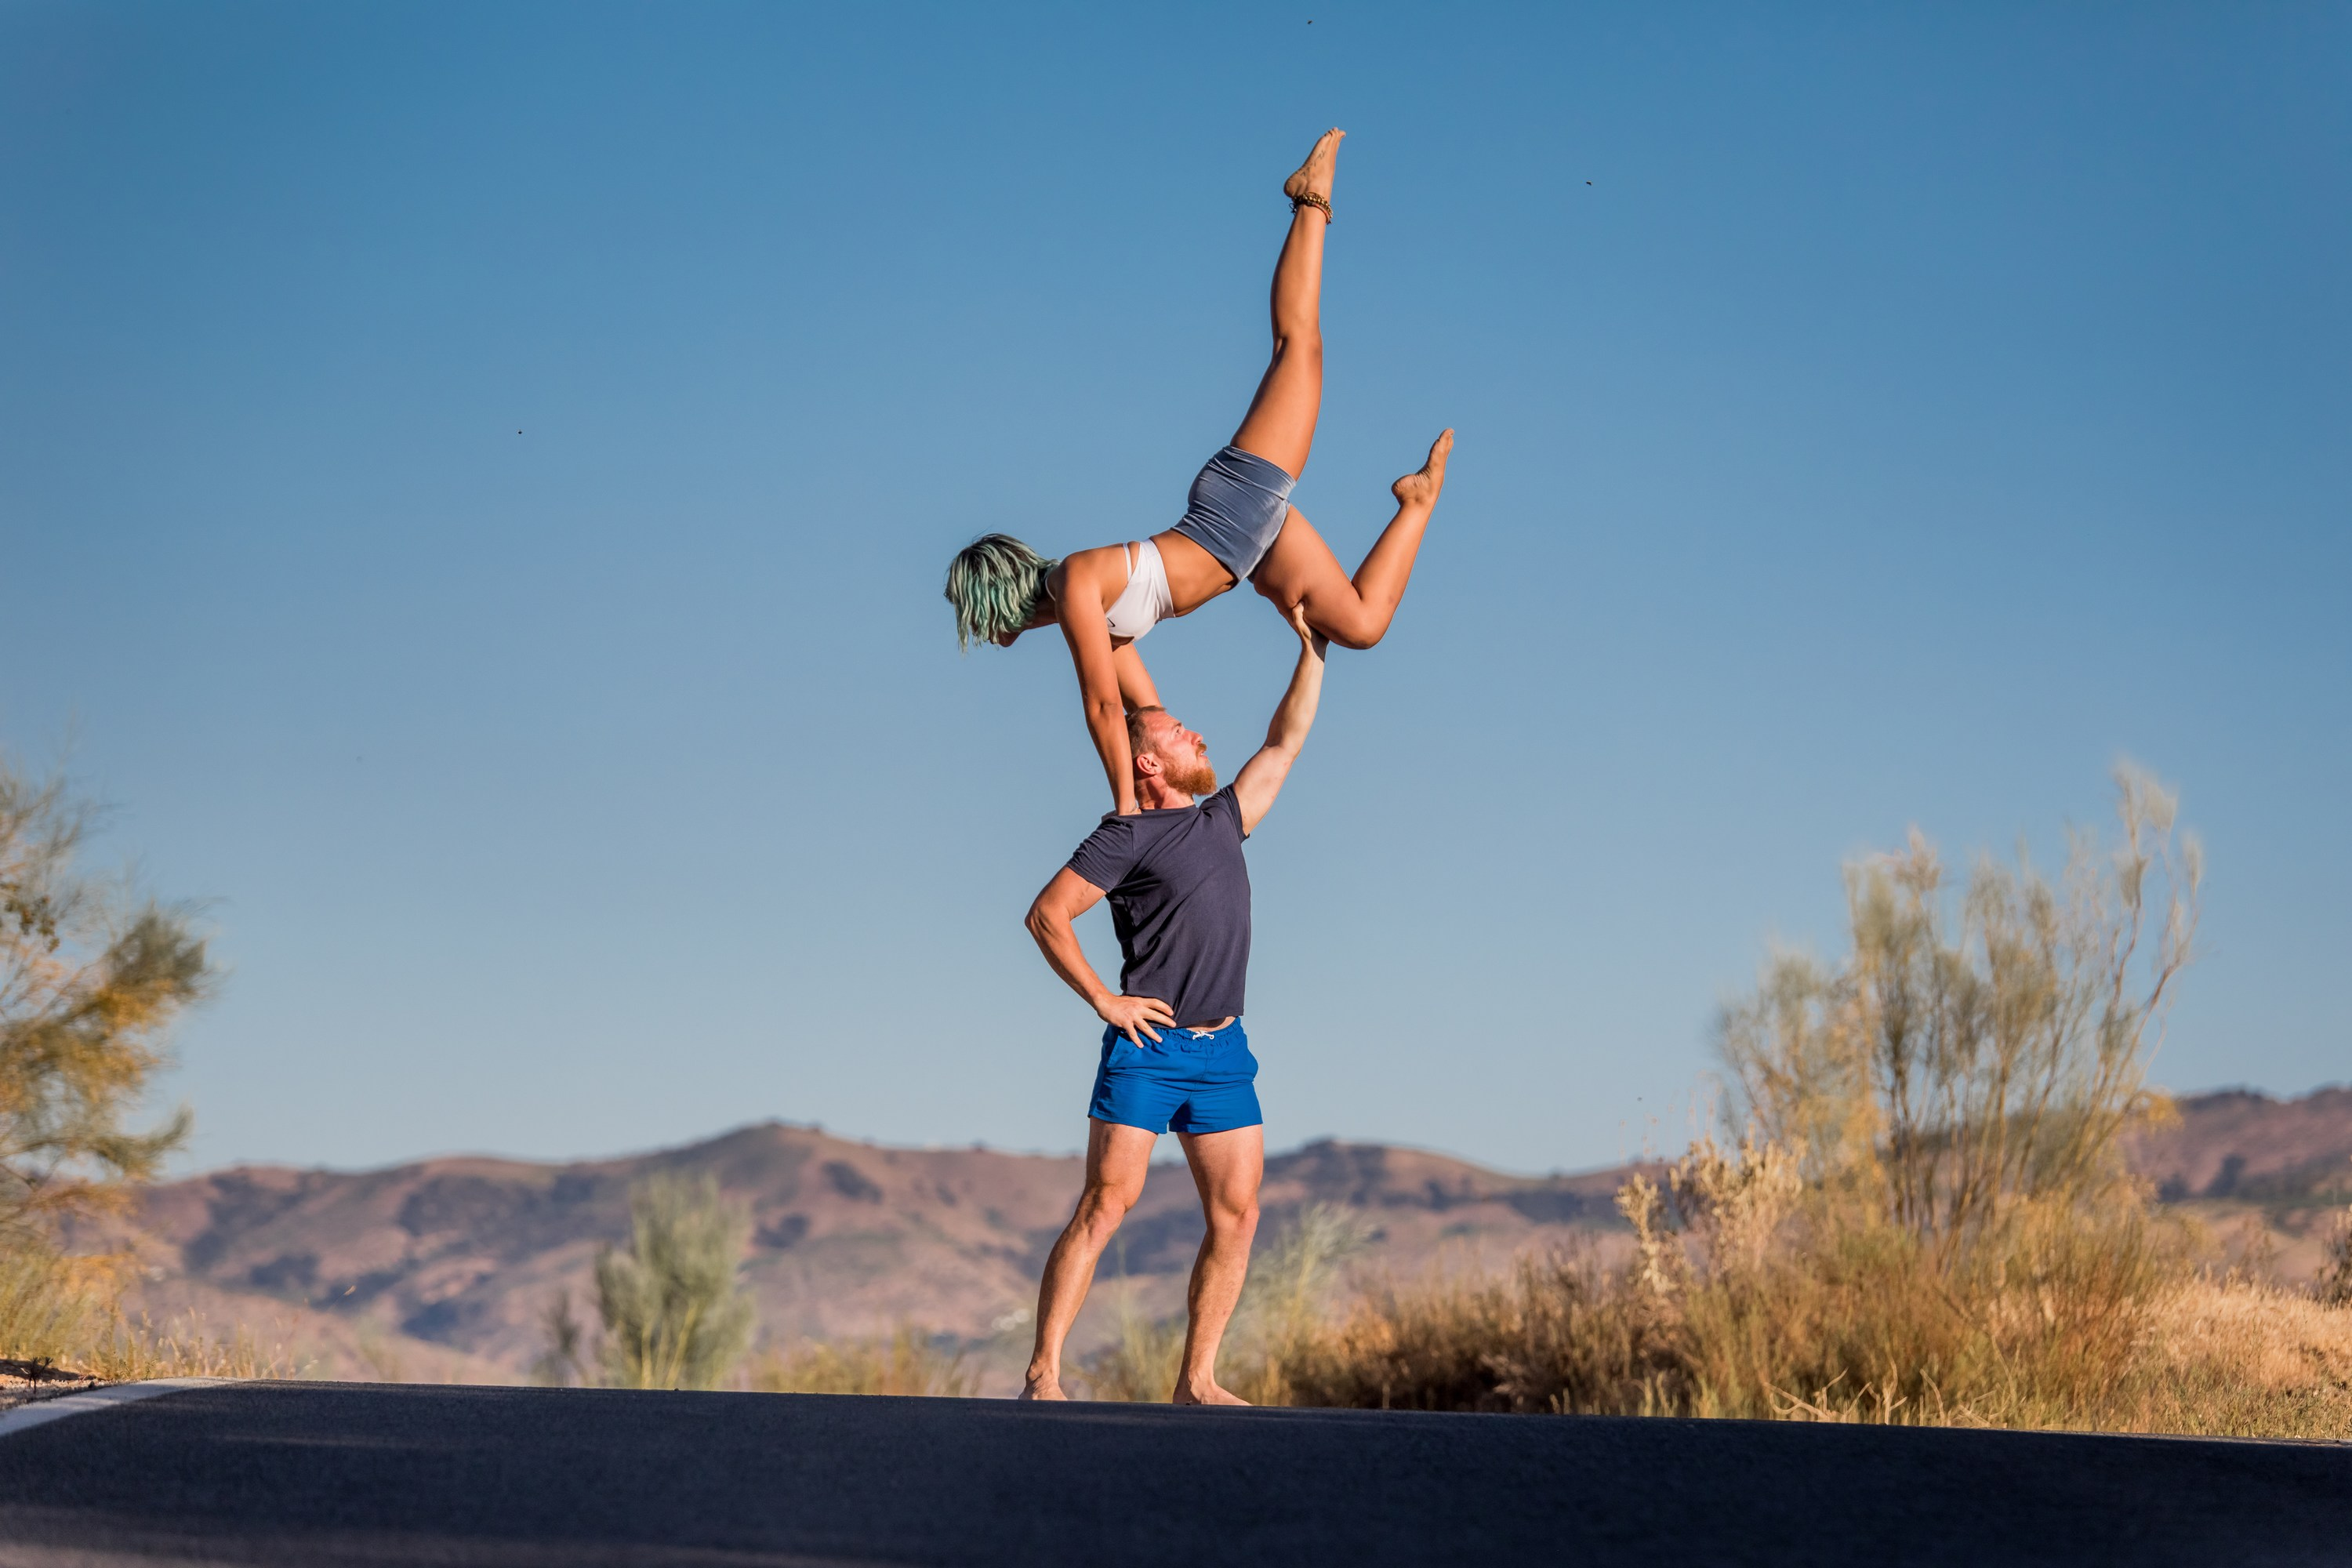 partneracrobatics.com